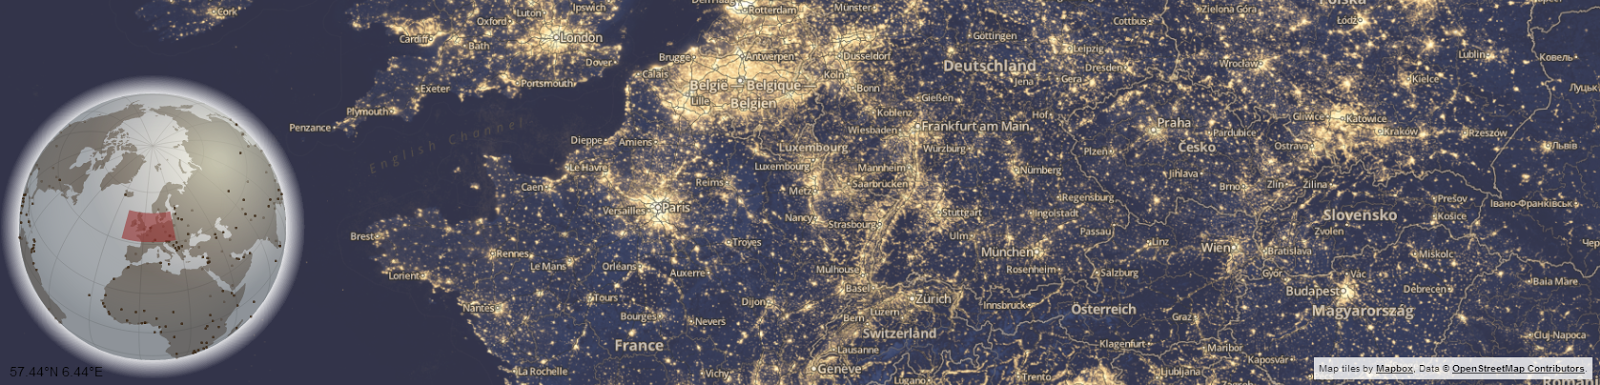 D3 js Tips and Tricks: Mapping with d3 js overview